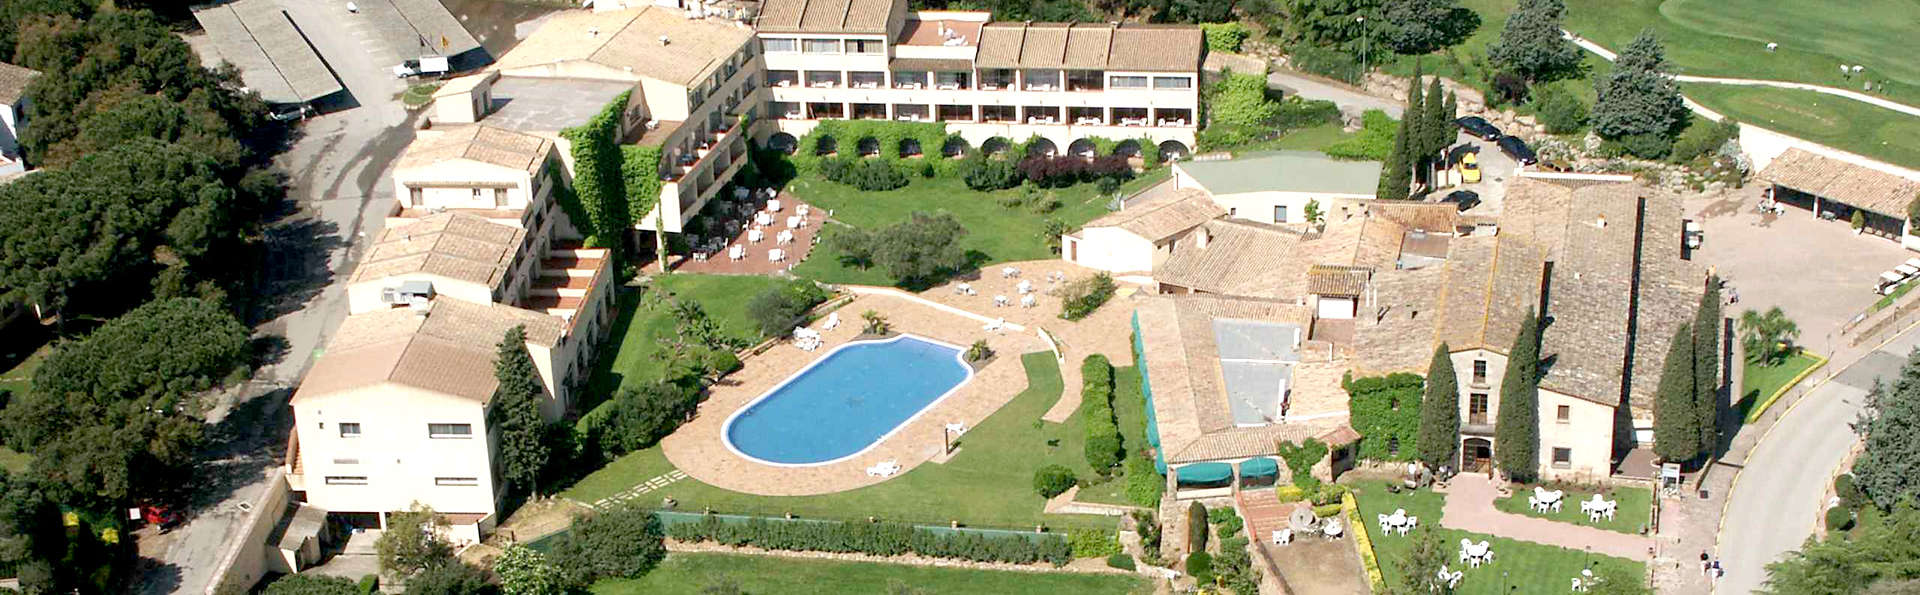 Hotel Golf Costa Brava - Edit_View.jpg